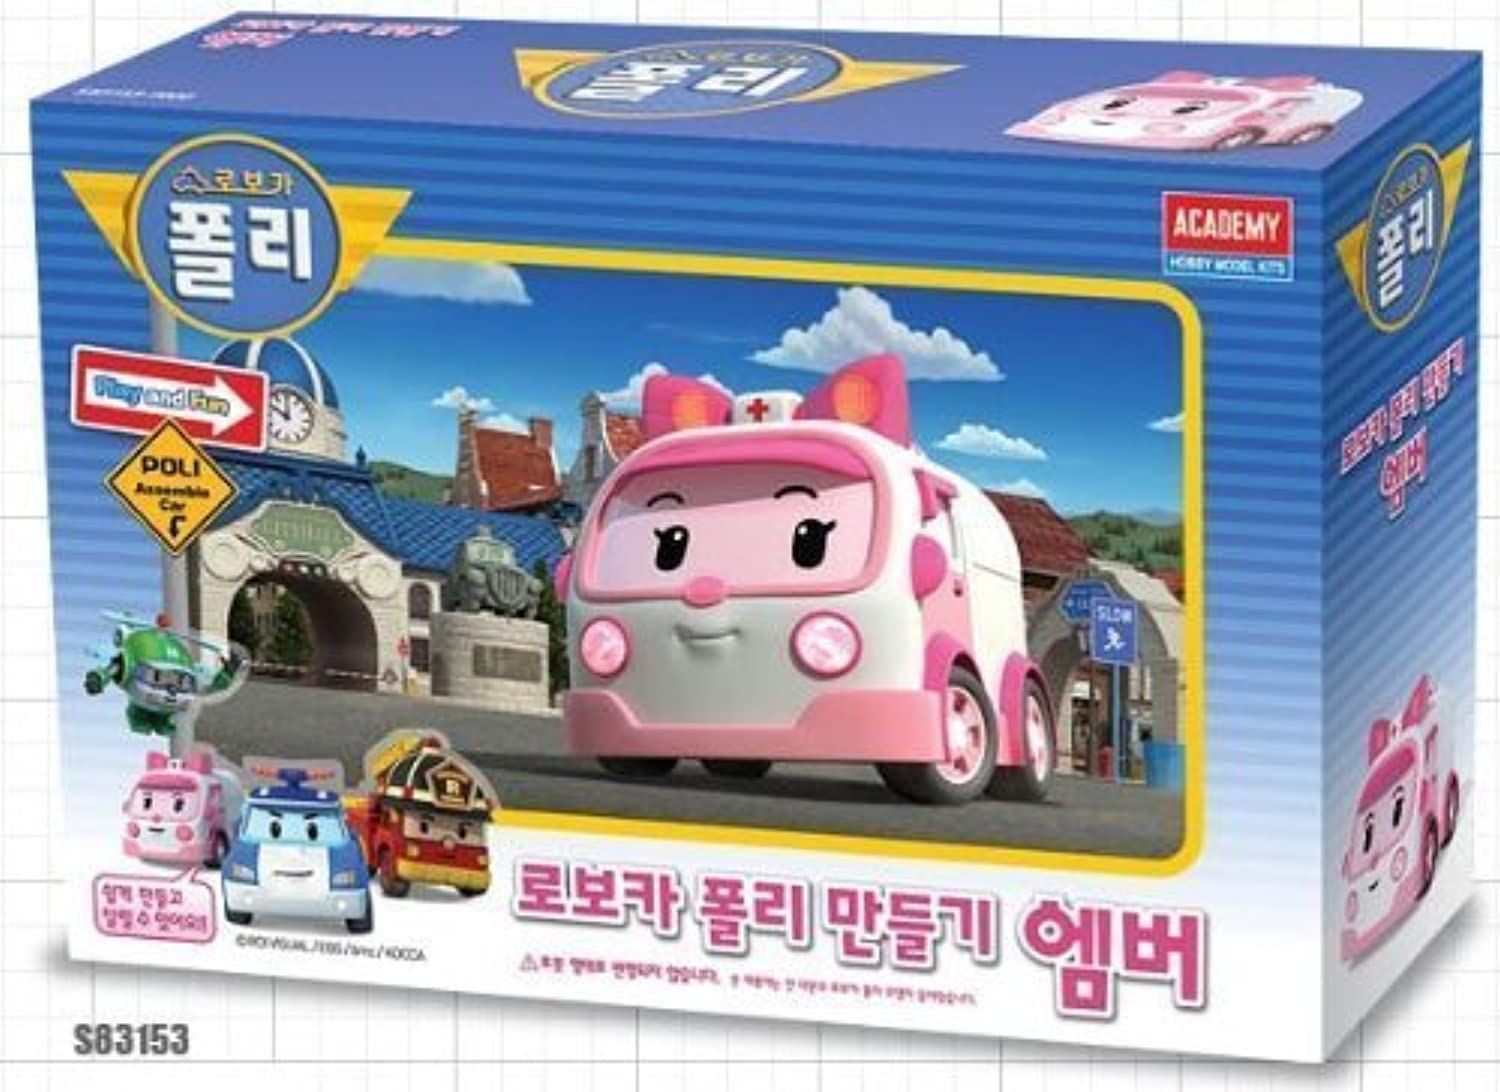 Robocar Poli Assemble Toy - Amber (Make a Robot) By Robocar Poli [並行輸入品]